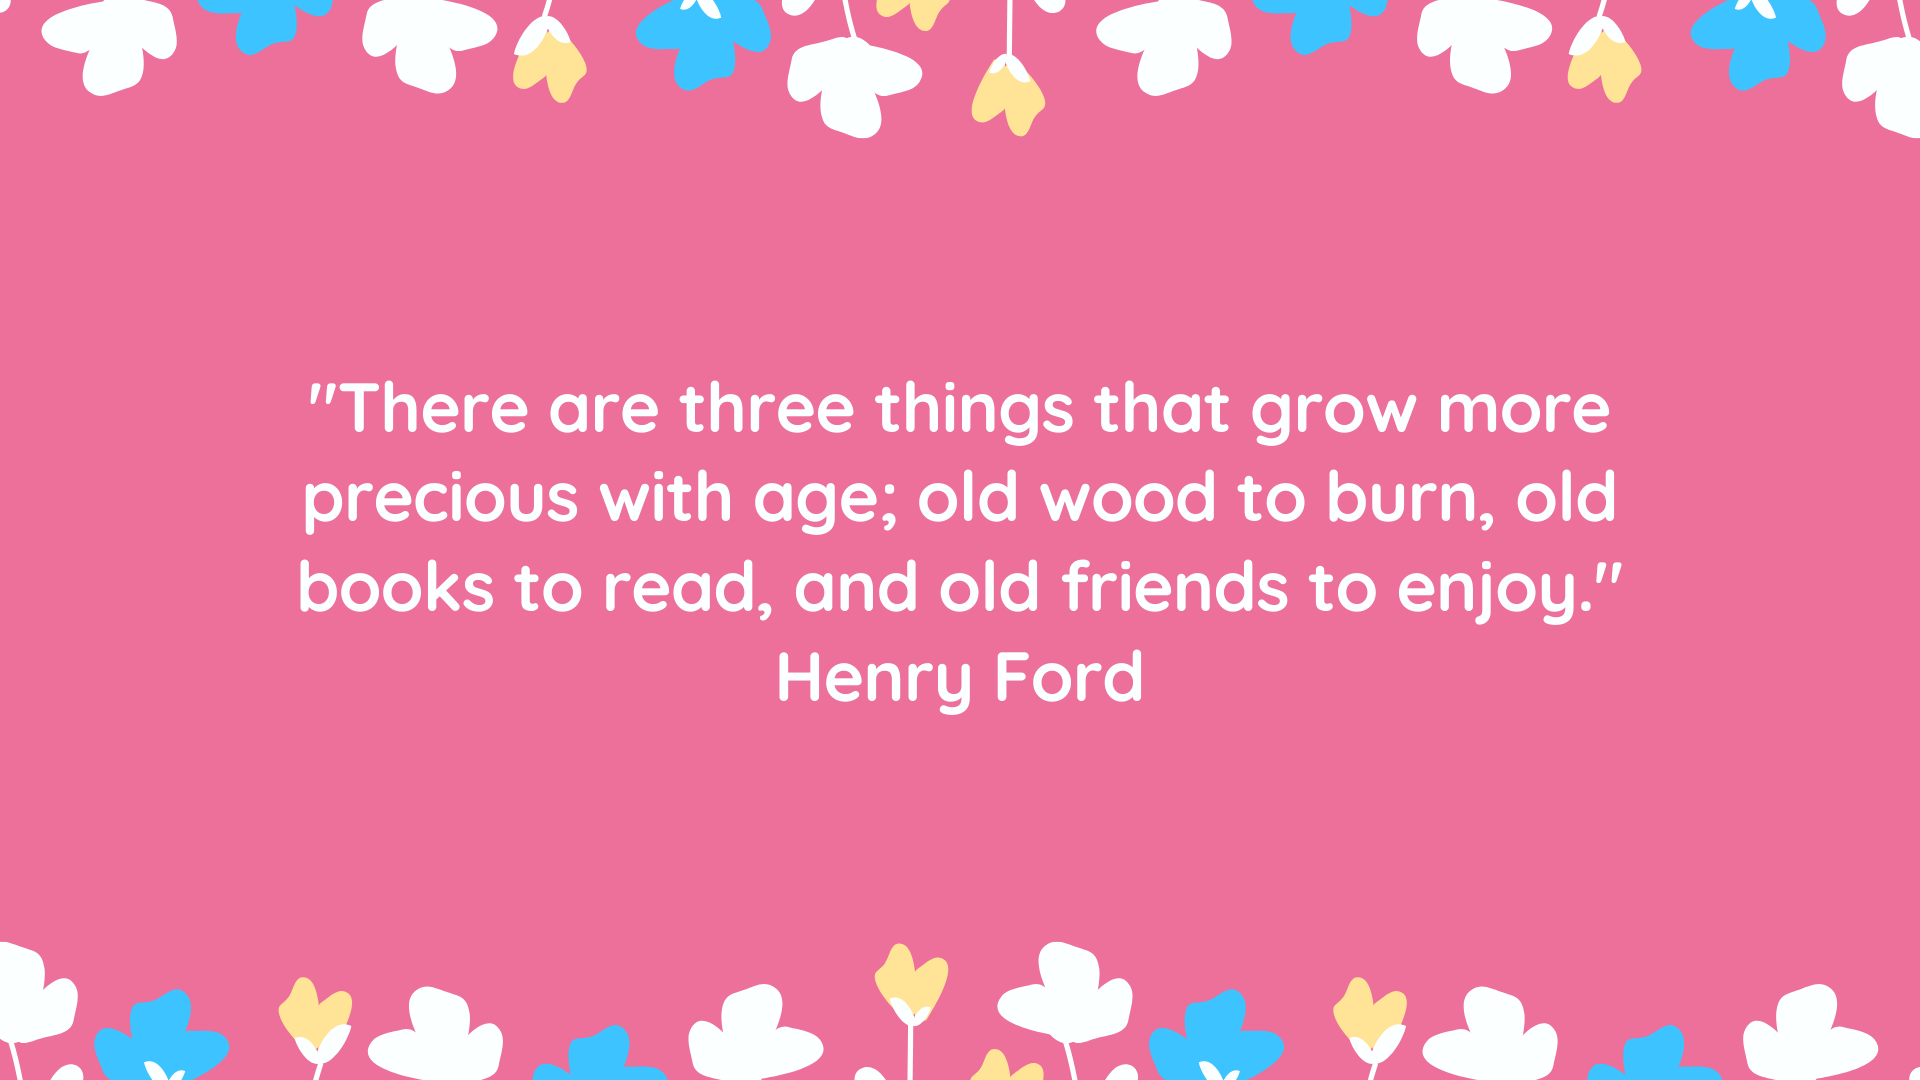 """There are three things that grow more precious with age; old wood to burn, old books to read, and old friends to enjoy."" Henry Ford"